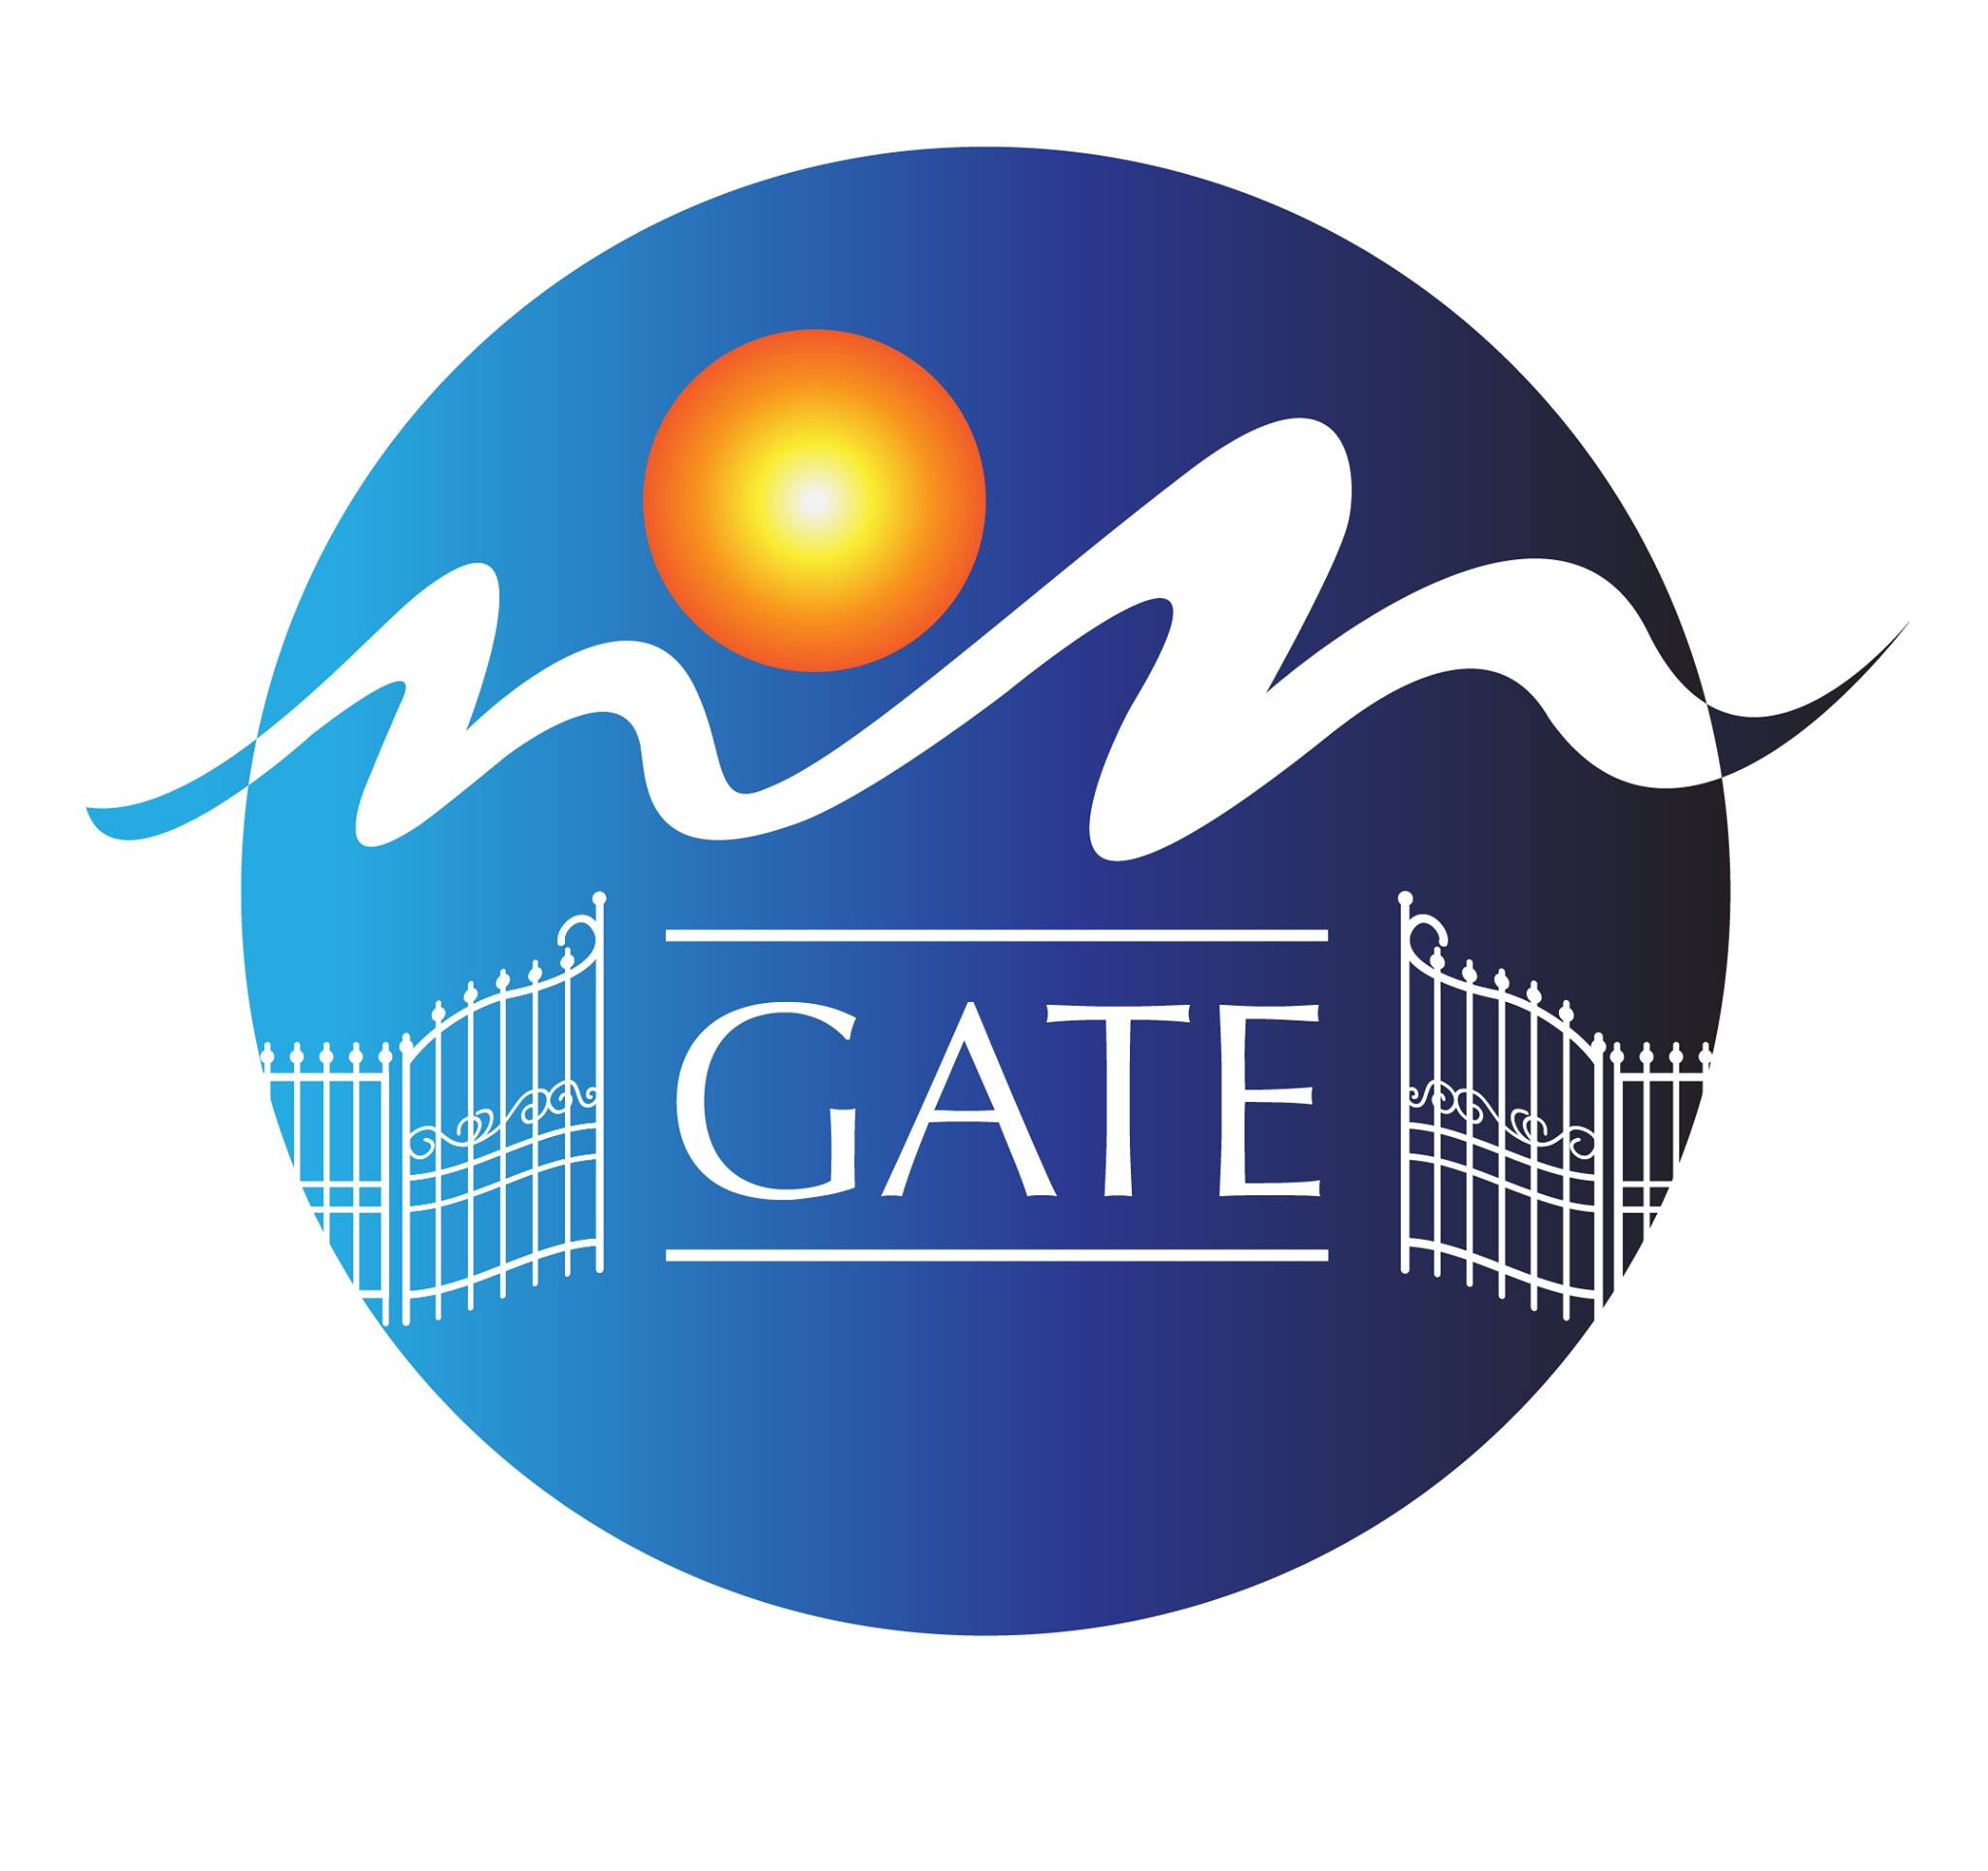 Gathering At The Edge - GATE is a weekly meal that happens on Tuesdays from April to November every year. This weekly gathering provides great lunches at a nominal cost in a relaxed setting for conversation and friendship. GATE is for older adults who are a part Water's Edge and the Harbor Country community.